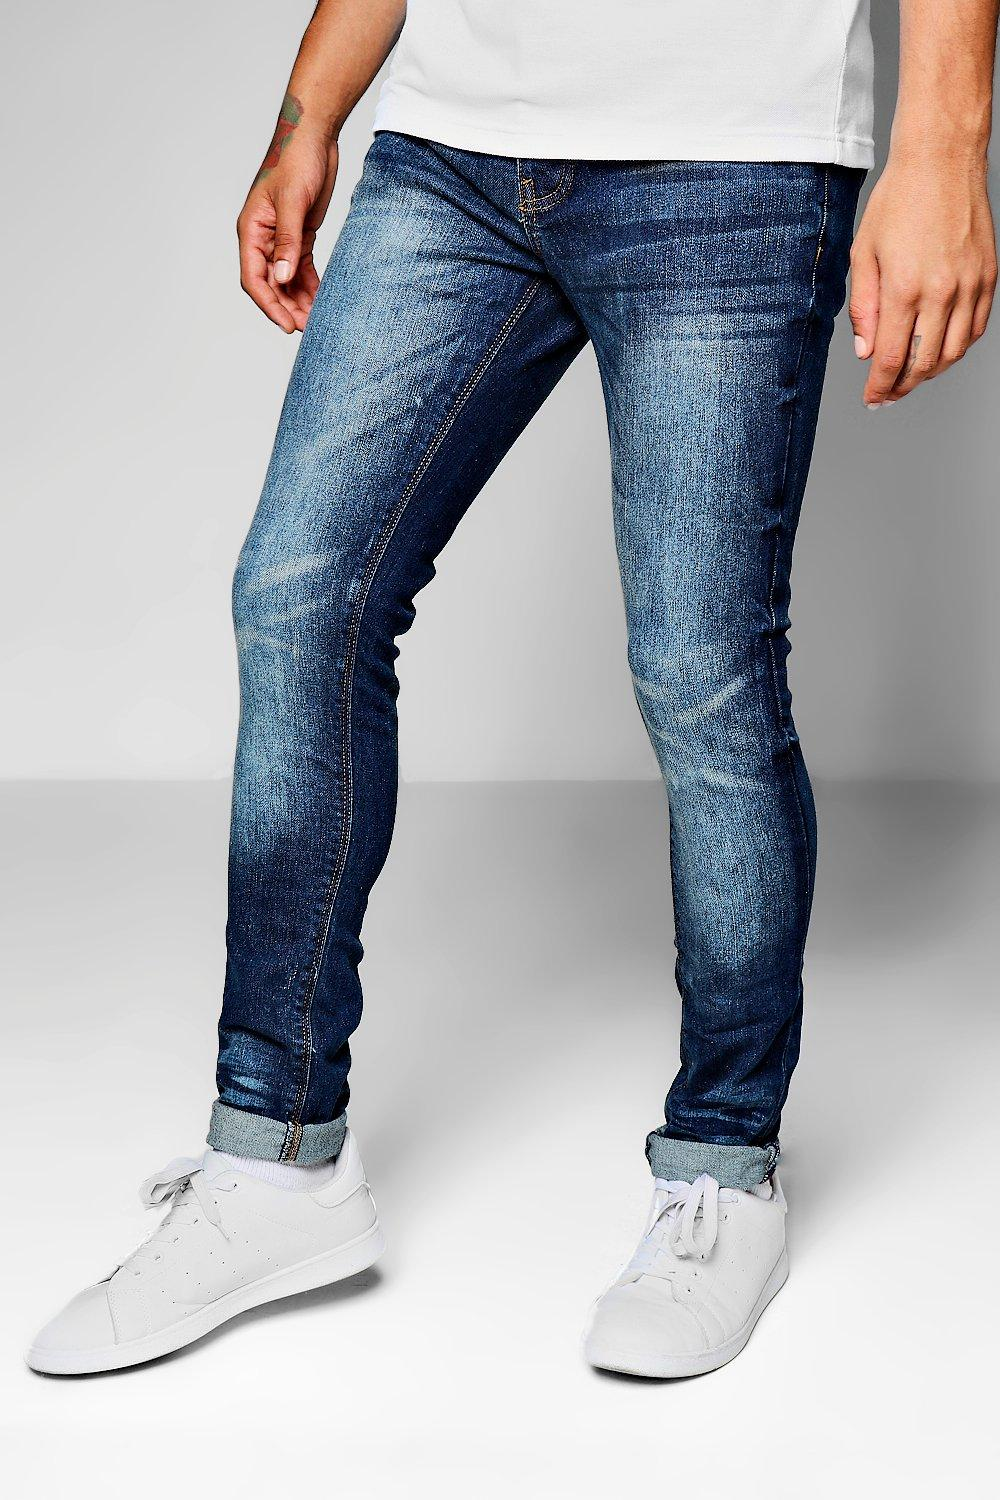 d8e11a3d94 ... Skinny Fit Denim Jeans With Whiskering. Hover to zoom